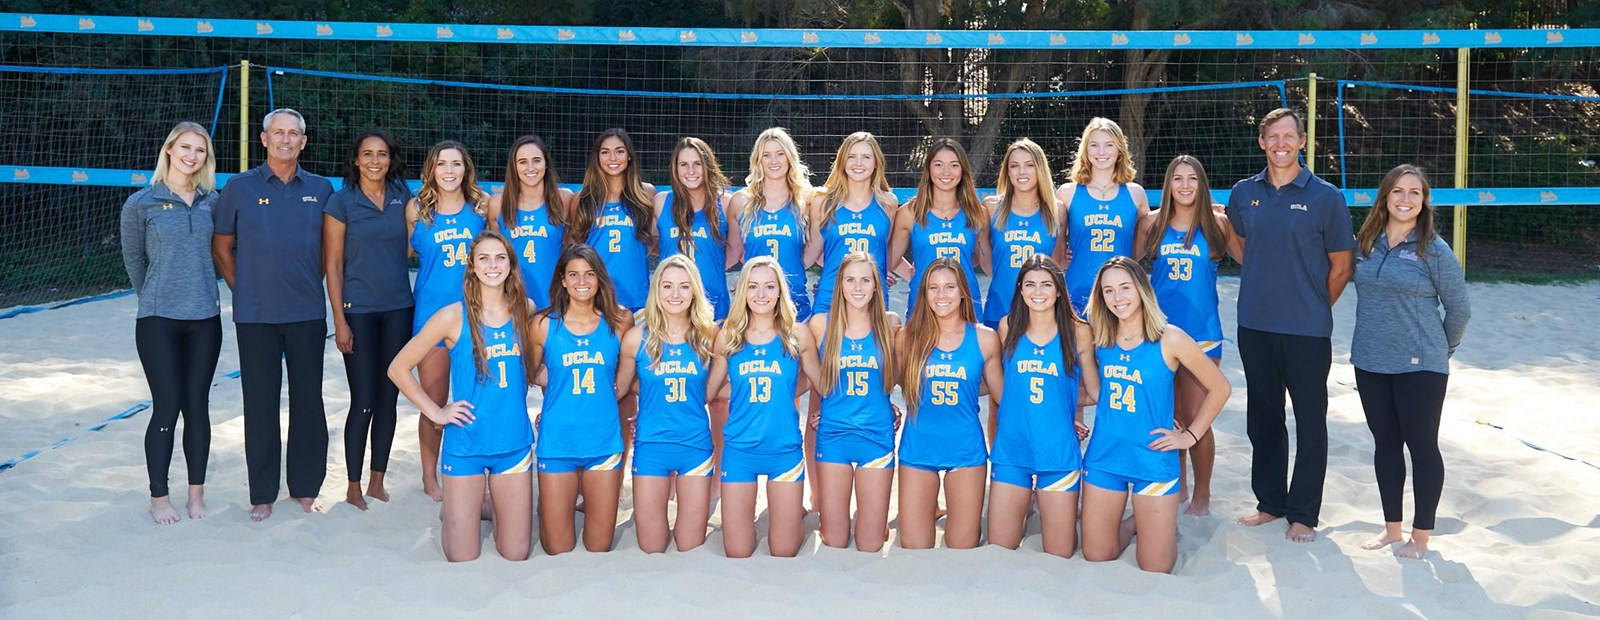 2018 Beach Volleyball Roster Ucla